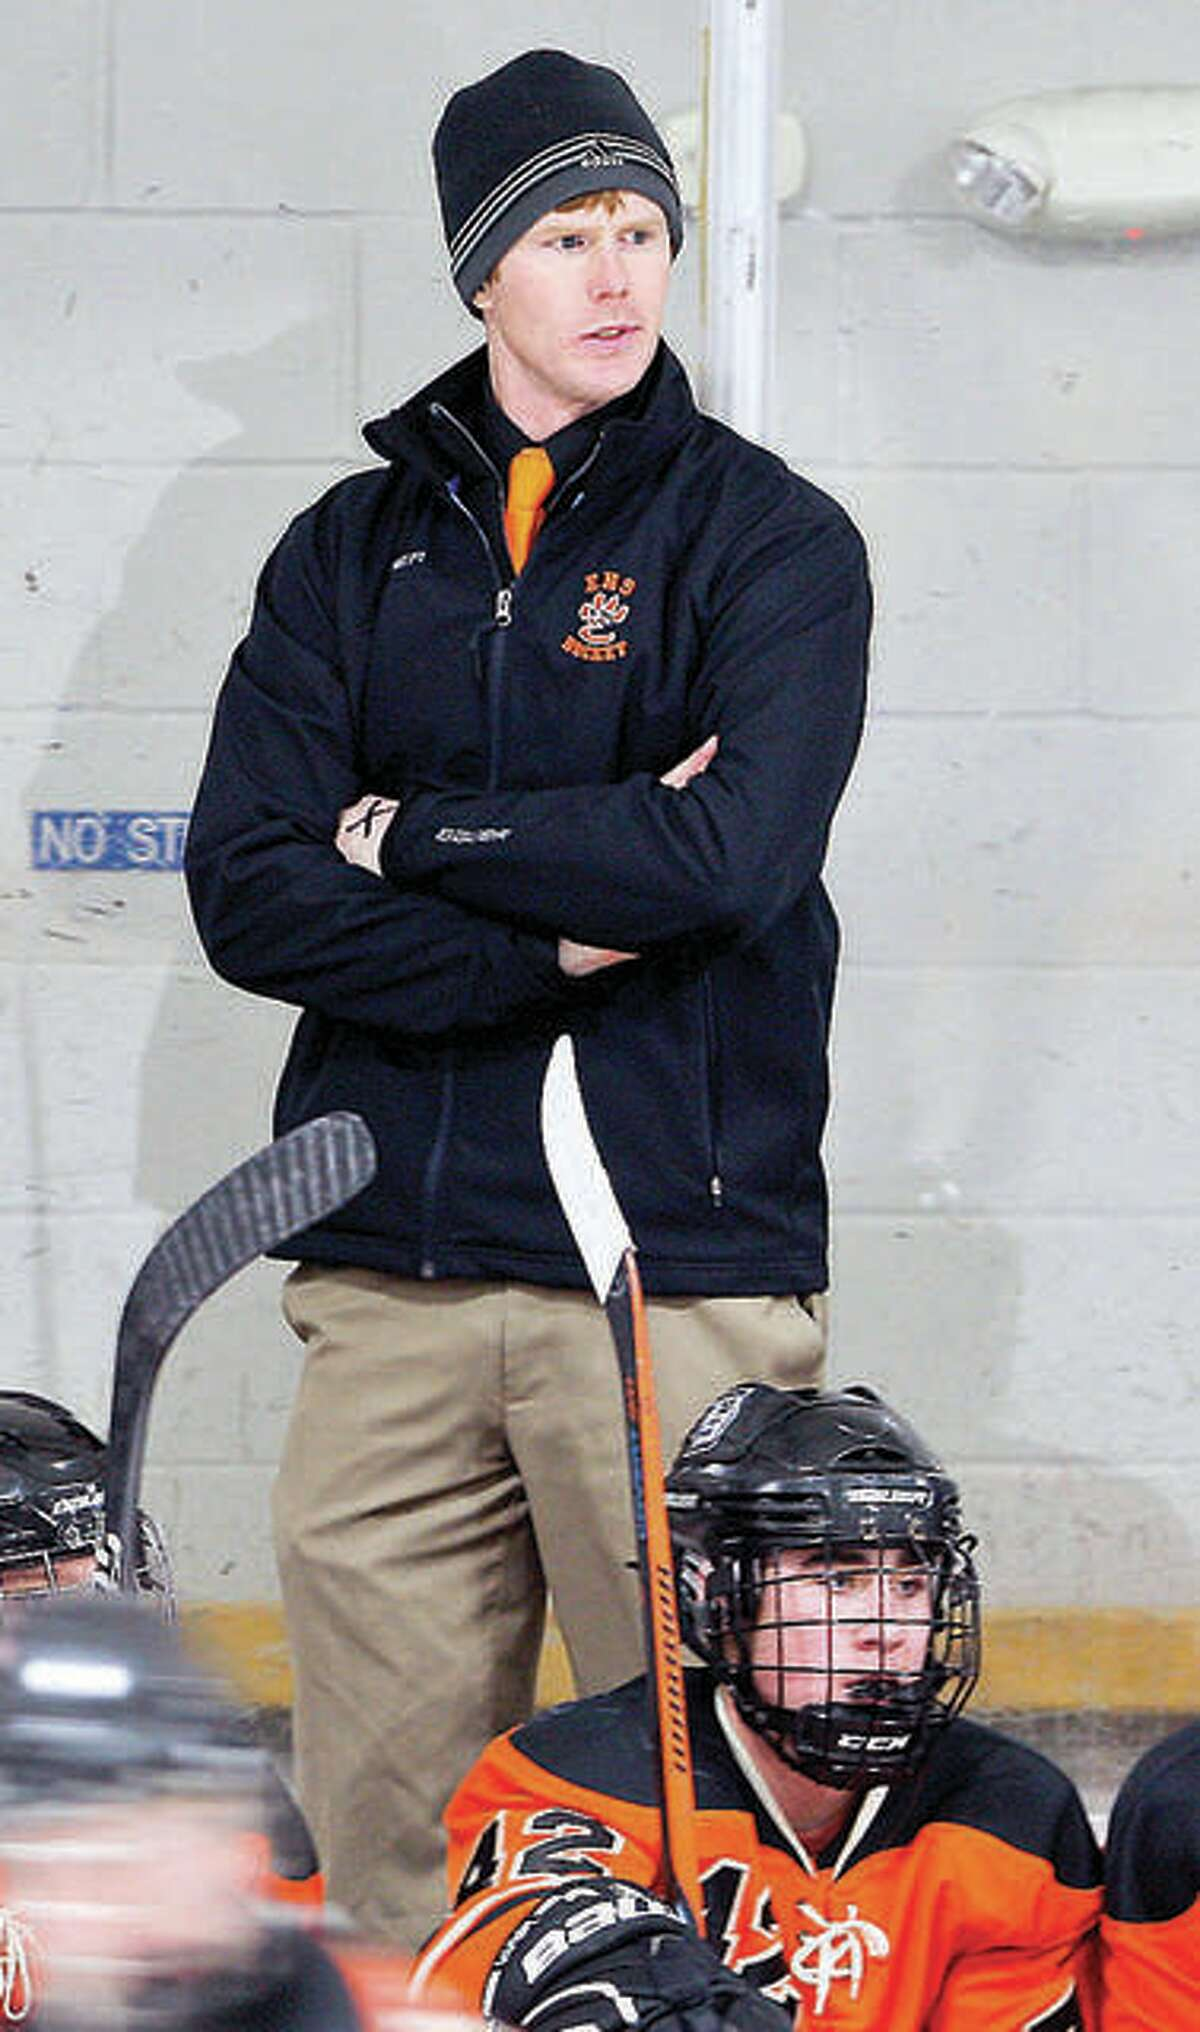 Edwardsville hockey coach Jason Walker will lead his Tigers to the U.S. Hockey High School National Hockey Tournament in suburban Dallas from March 26-30.